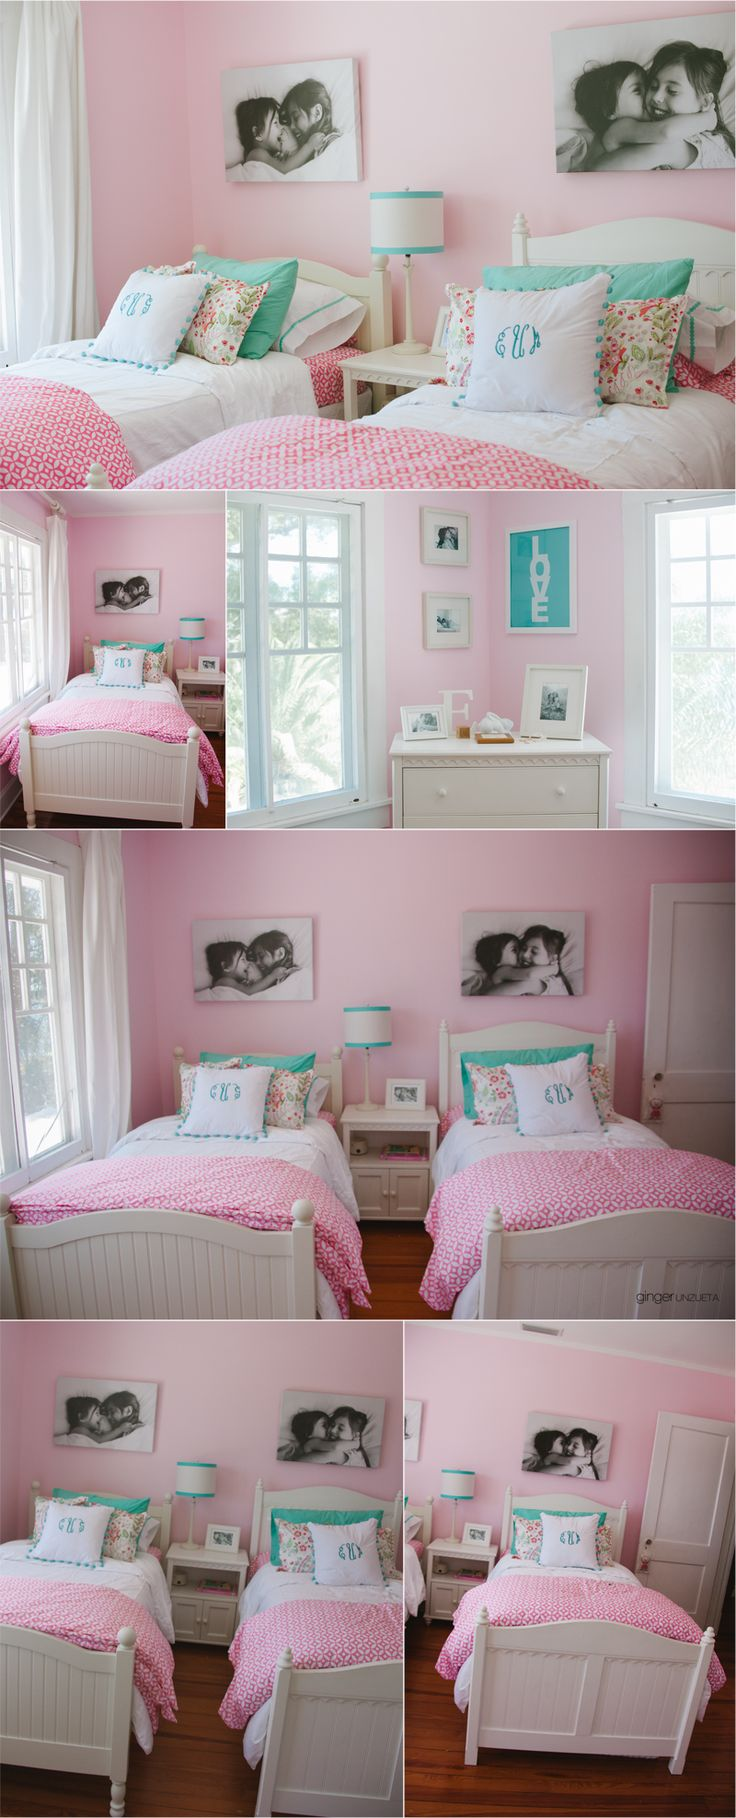 822 best little girl's rooms images on Pinterest